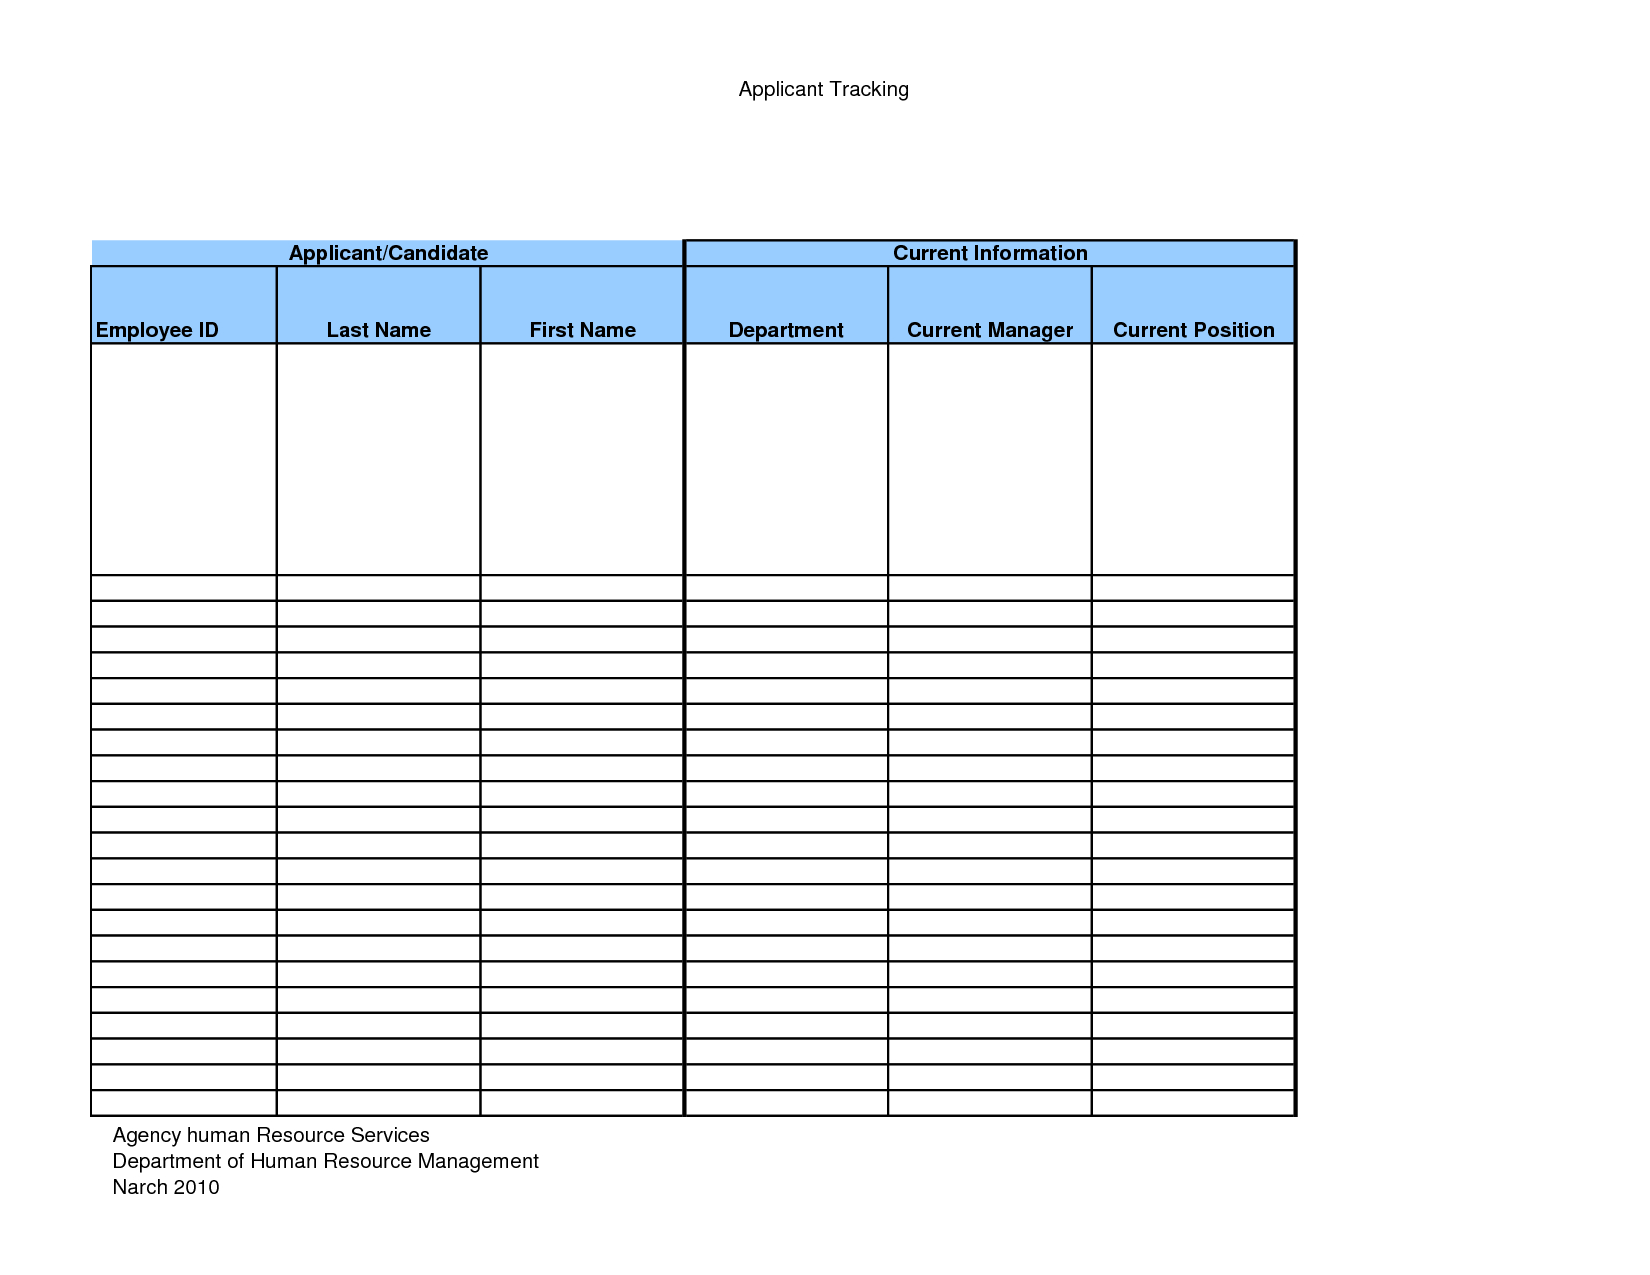 Job Search Tracking Spreadsheet Pertaining To Daily Recruitment Report Template Applicant Tracking Spreadsheet